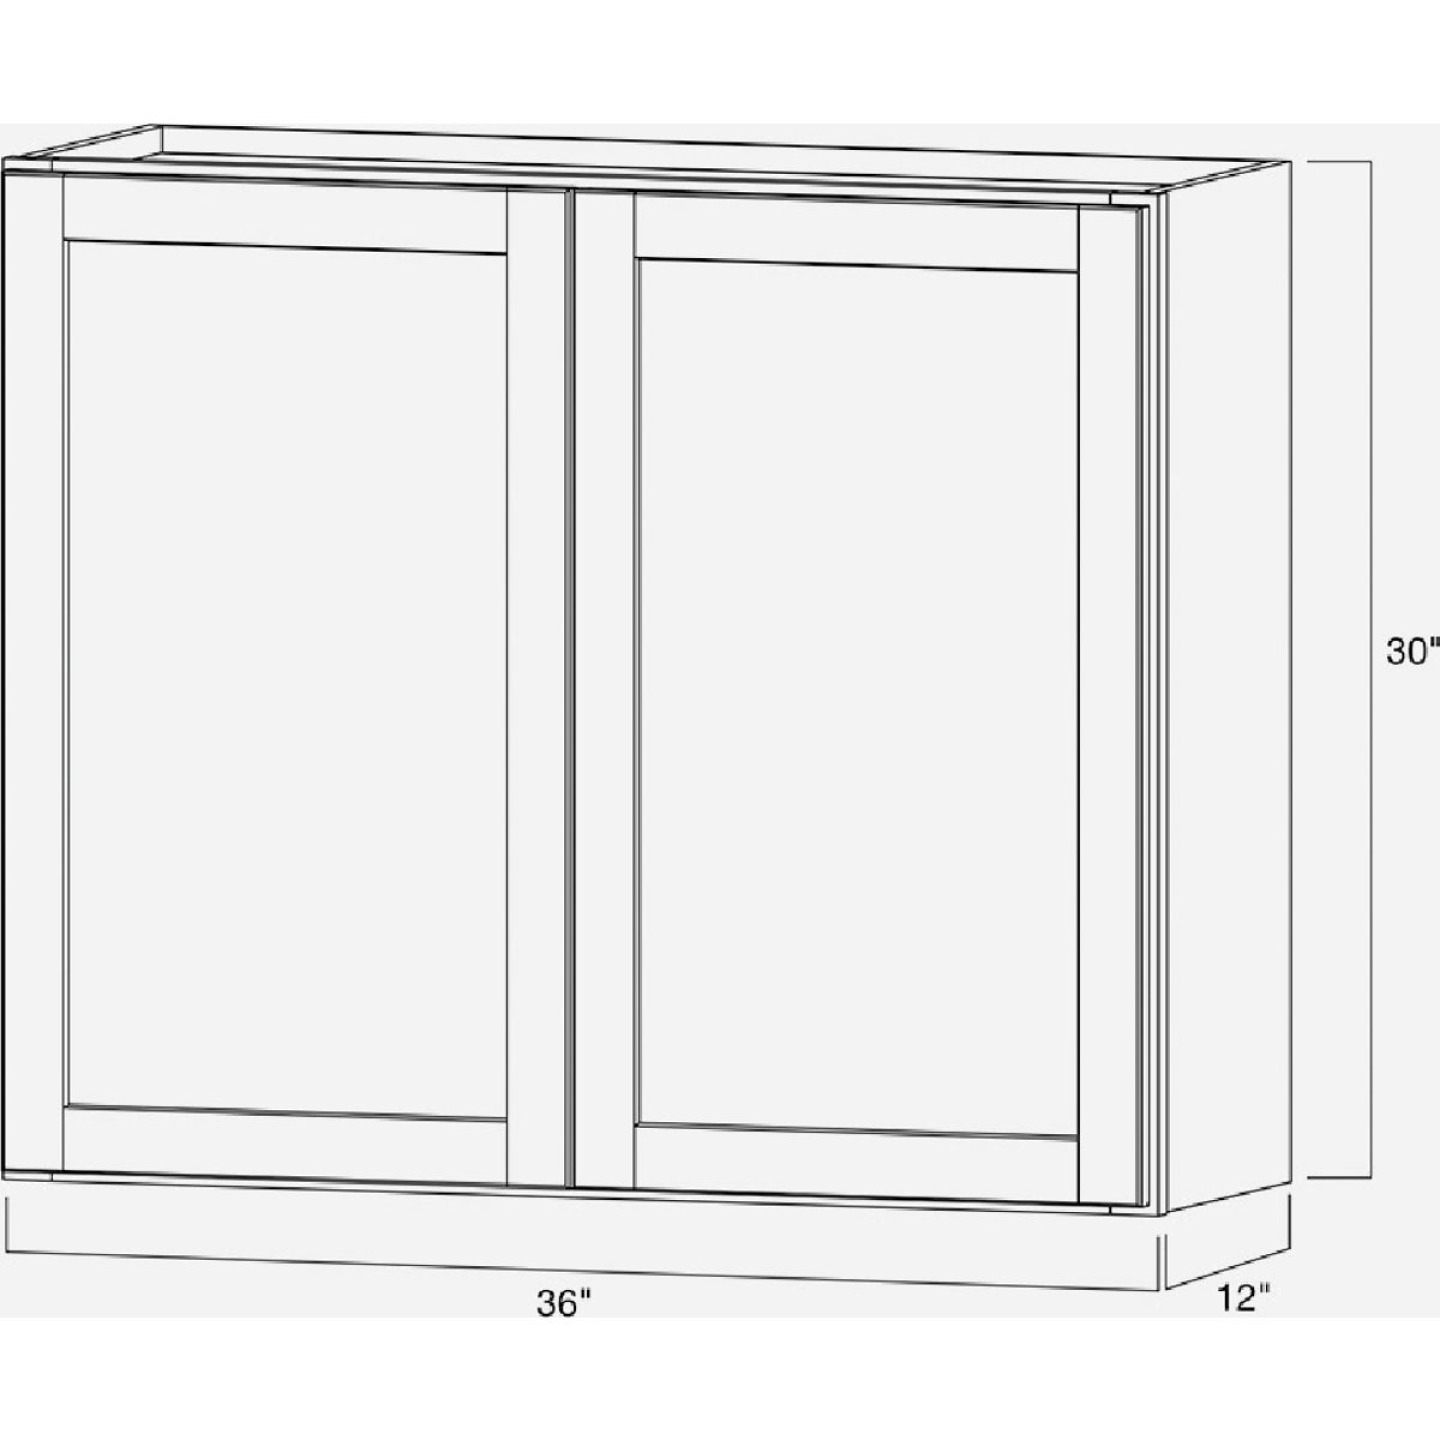 Continental Cabinets Andover Shaker 36 In. W x 30 In. H x 12 In. D White Thermofoil Wall Kitchen Cabinet Image 6